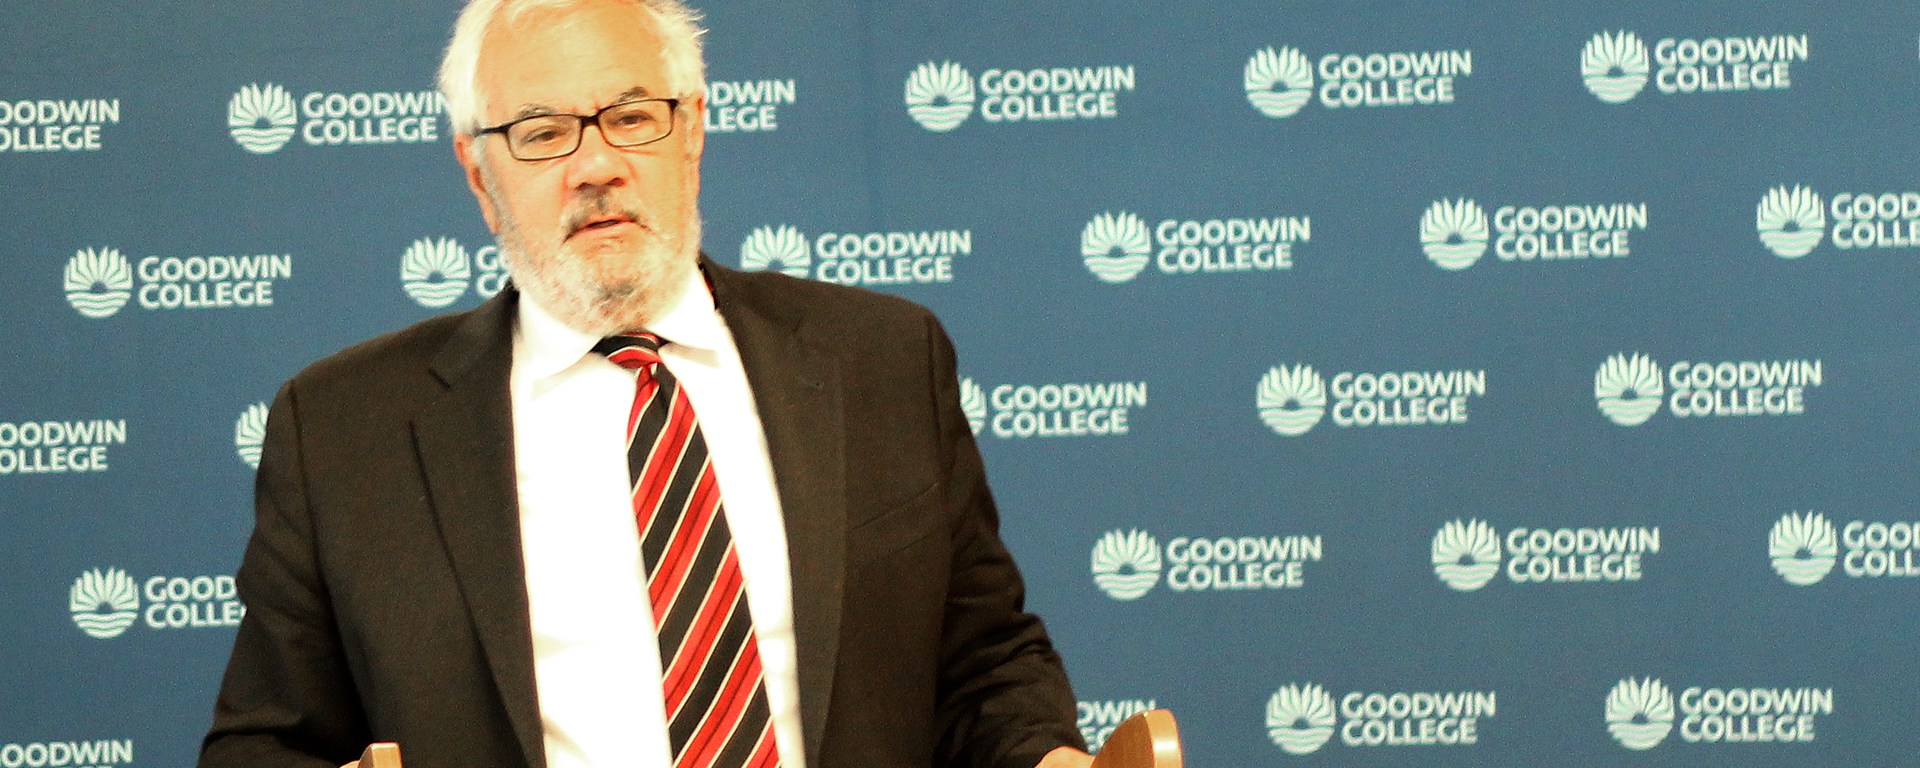 barney frank speech recap